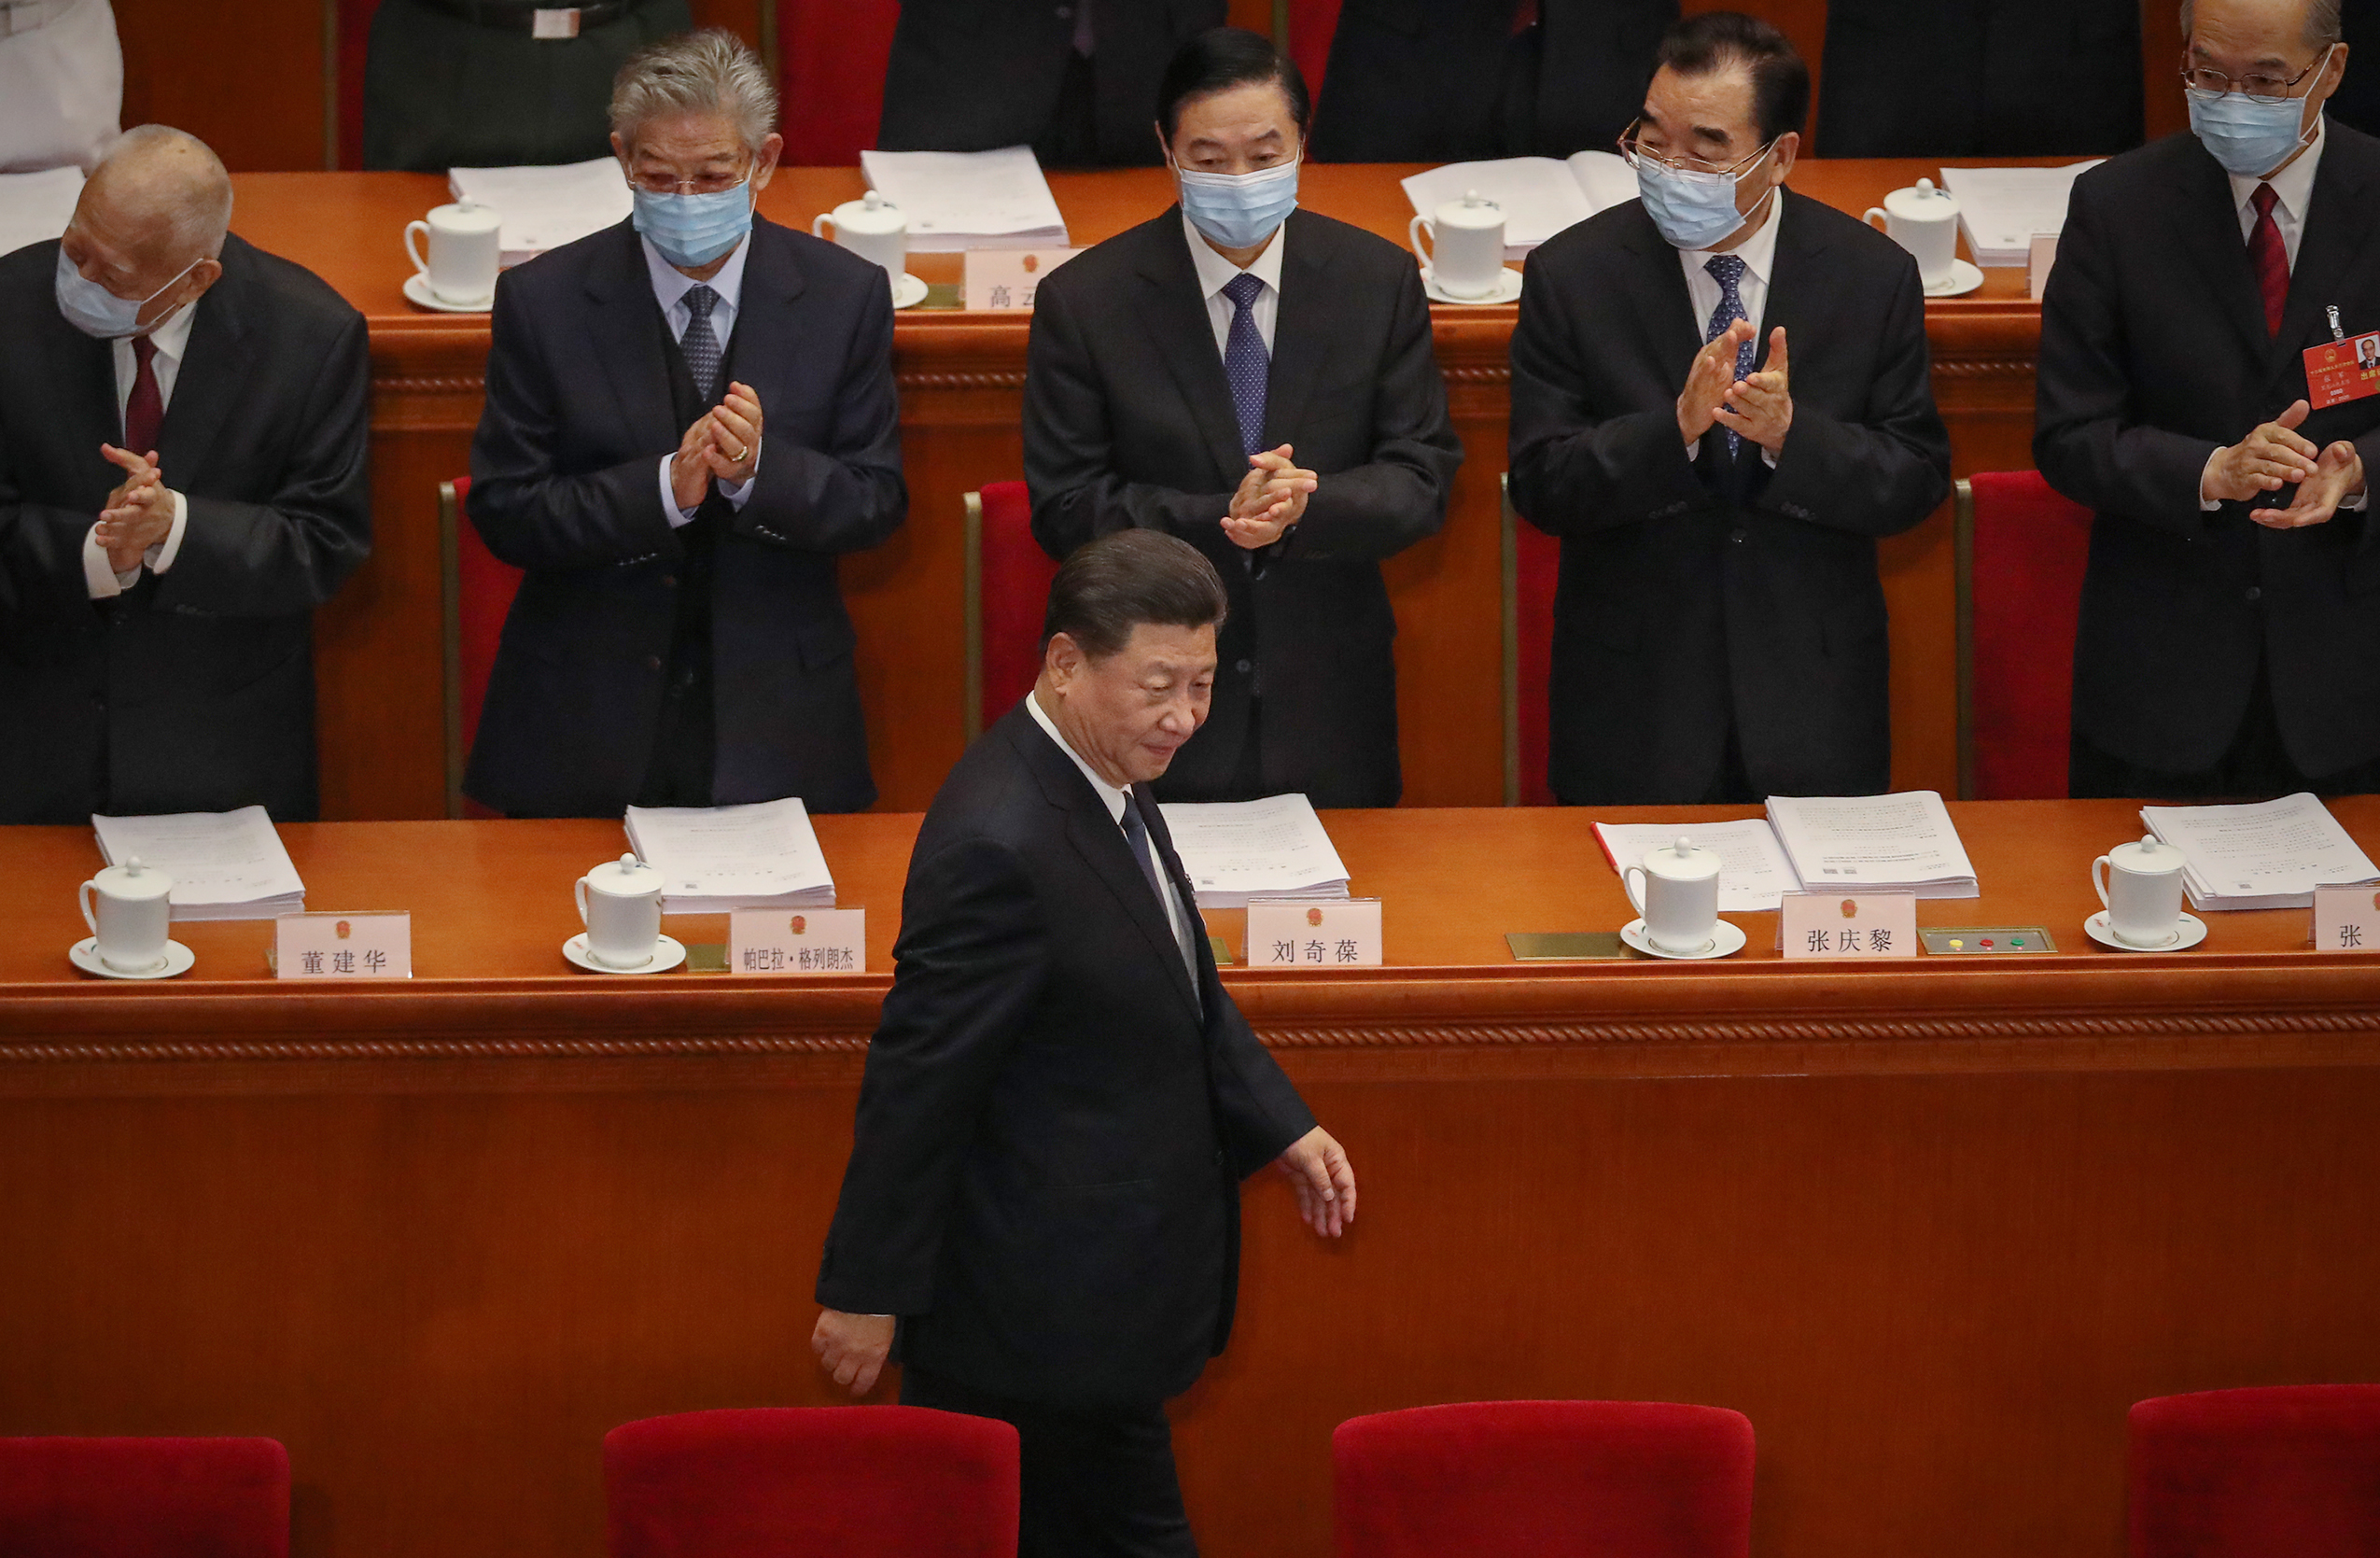 BEIJING, CHINA - MAY 22: Chinese President Xi Jinping arrives at The Great Hall of the People for the opening of the National People's Congress on May 22, 2020 in Beijing, China. China is holding now its annual Two Sessions political meetings, that were delayed since March due to the Covid19 outbreak. (Photo by Andrea Verdelli/Getty Images)